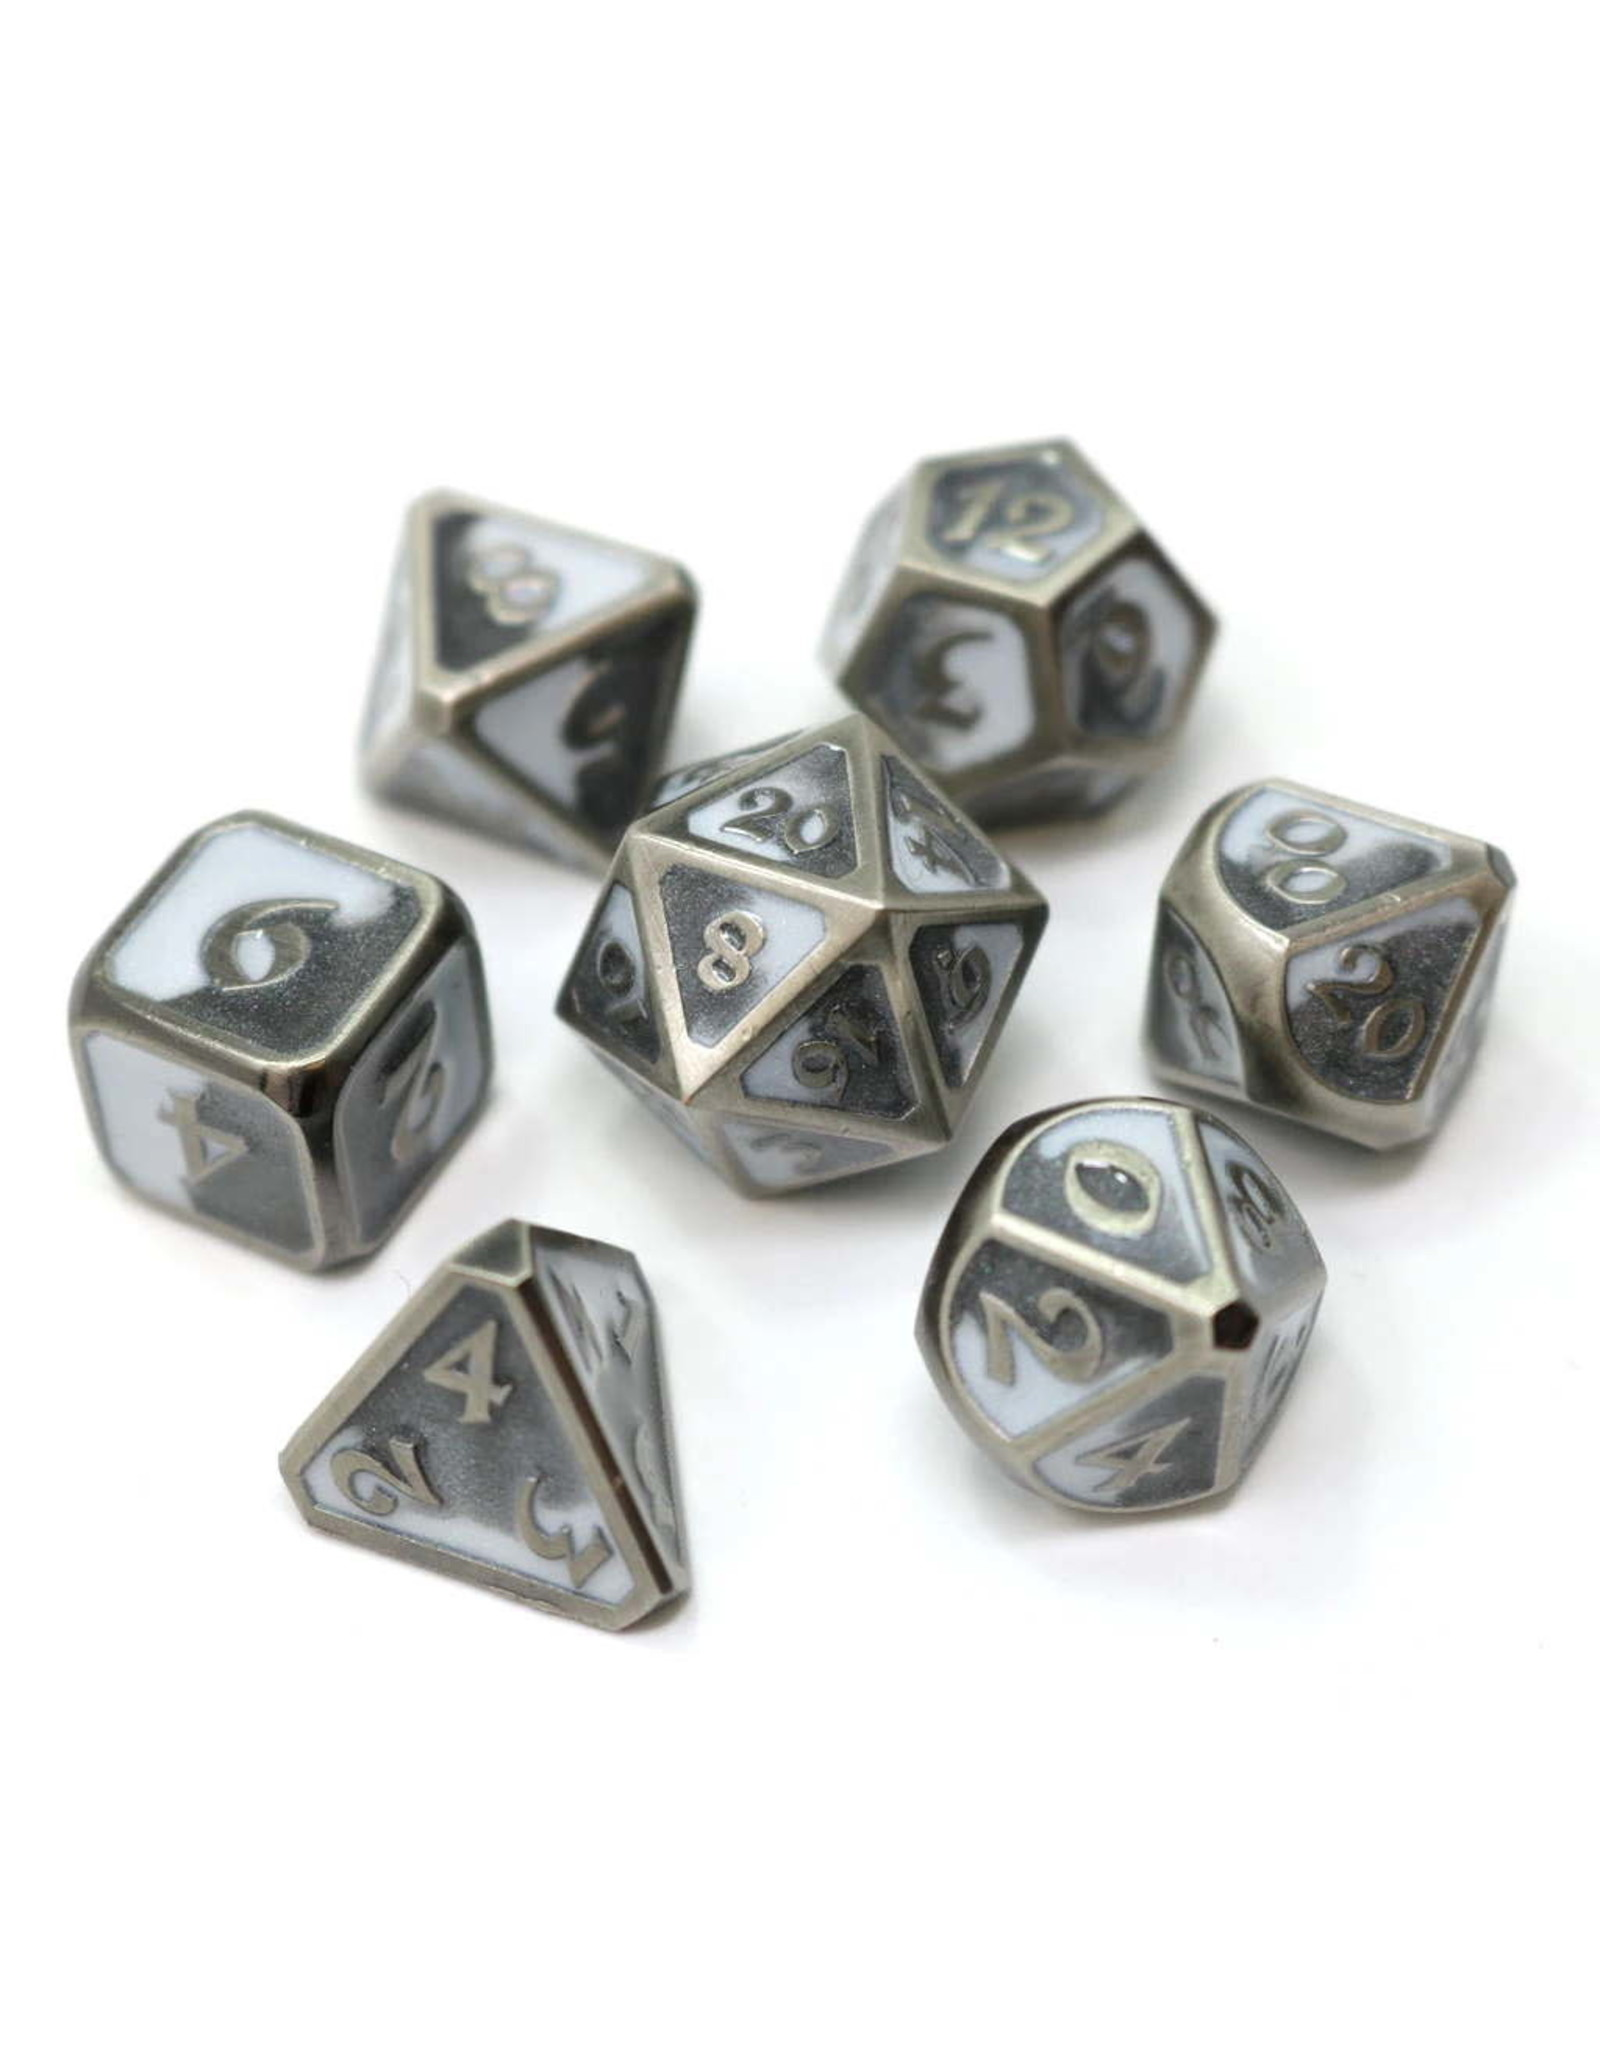 DIE HARD DICE DIE HARD DICE 7 CT SPELLBINDER SHADESTEEL